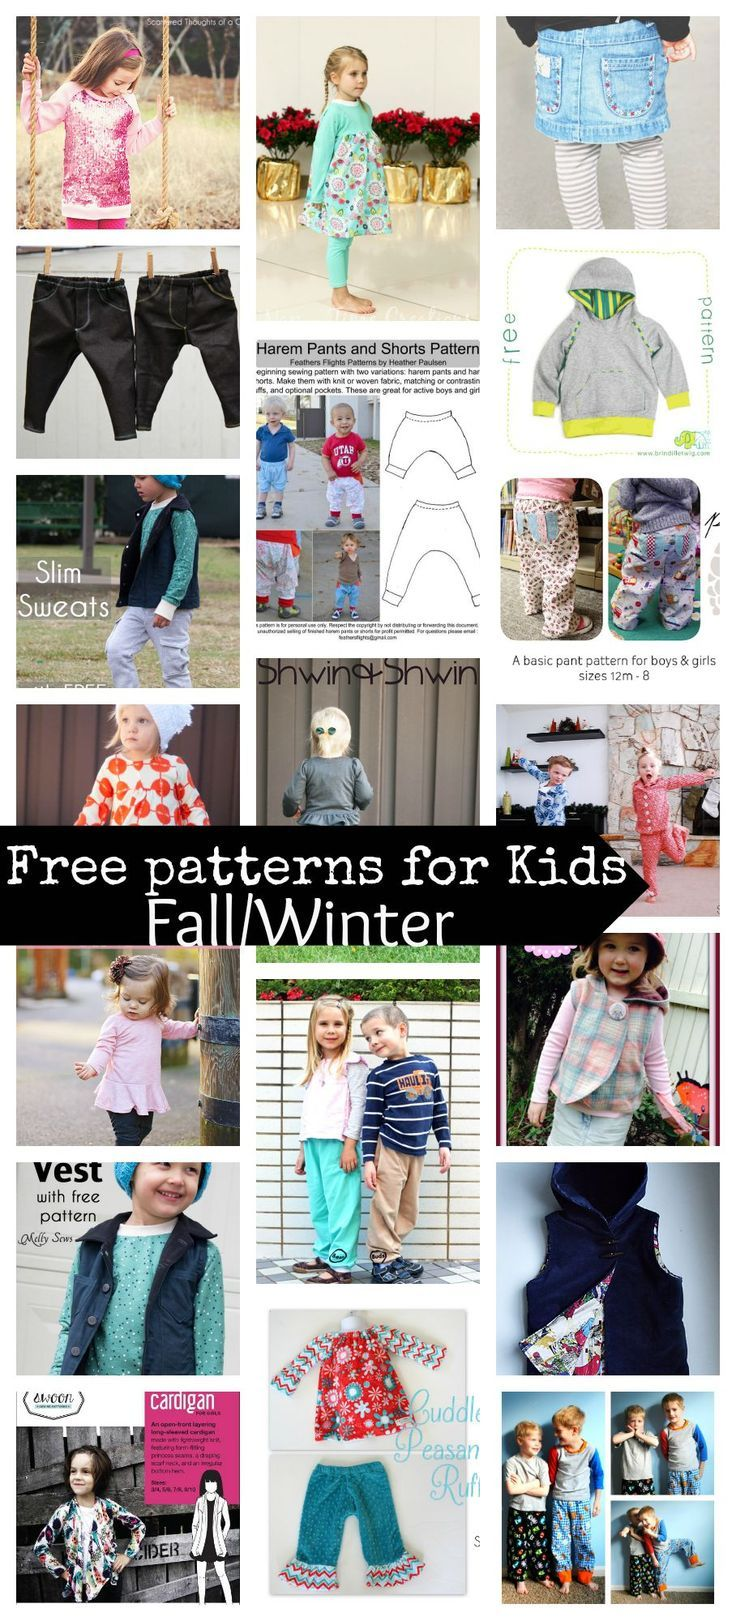 2713 best sewing images on pinterest sewing sewing projects and 20 free sewing patterns for kids fallwinter sew up all kinds of wonderful jeuxipadfo Images